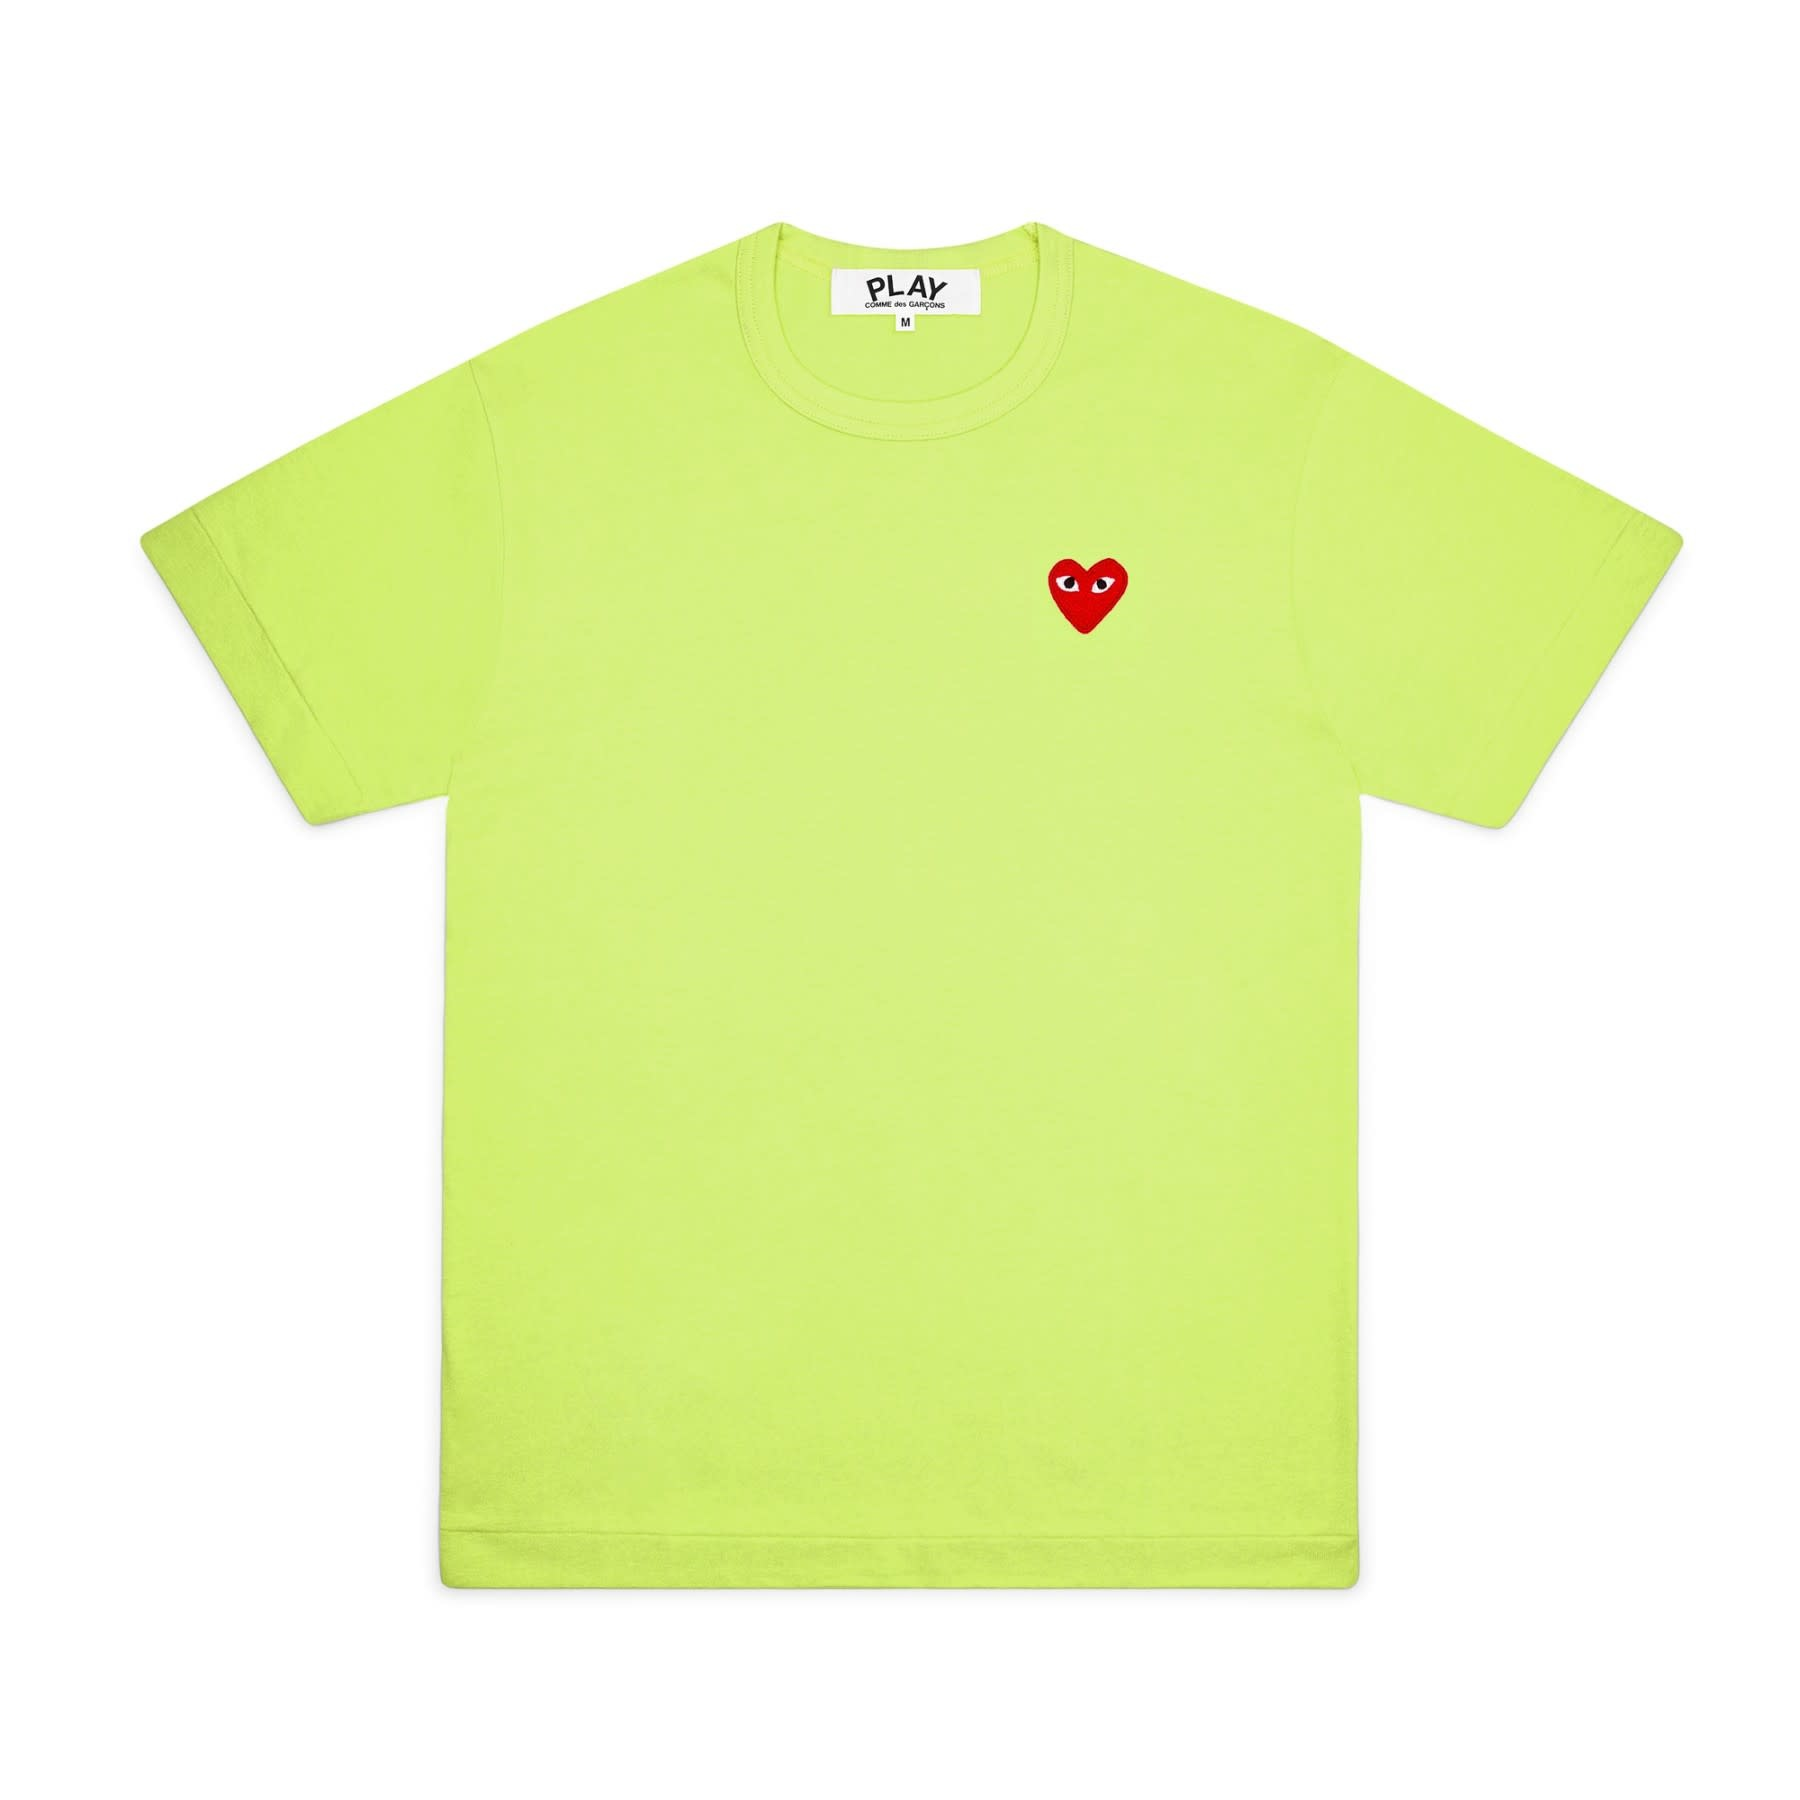 COMME des GARÇONS PLAY COMME DES GARÇONS PLAY GREEN TEE WITH RED HEART